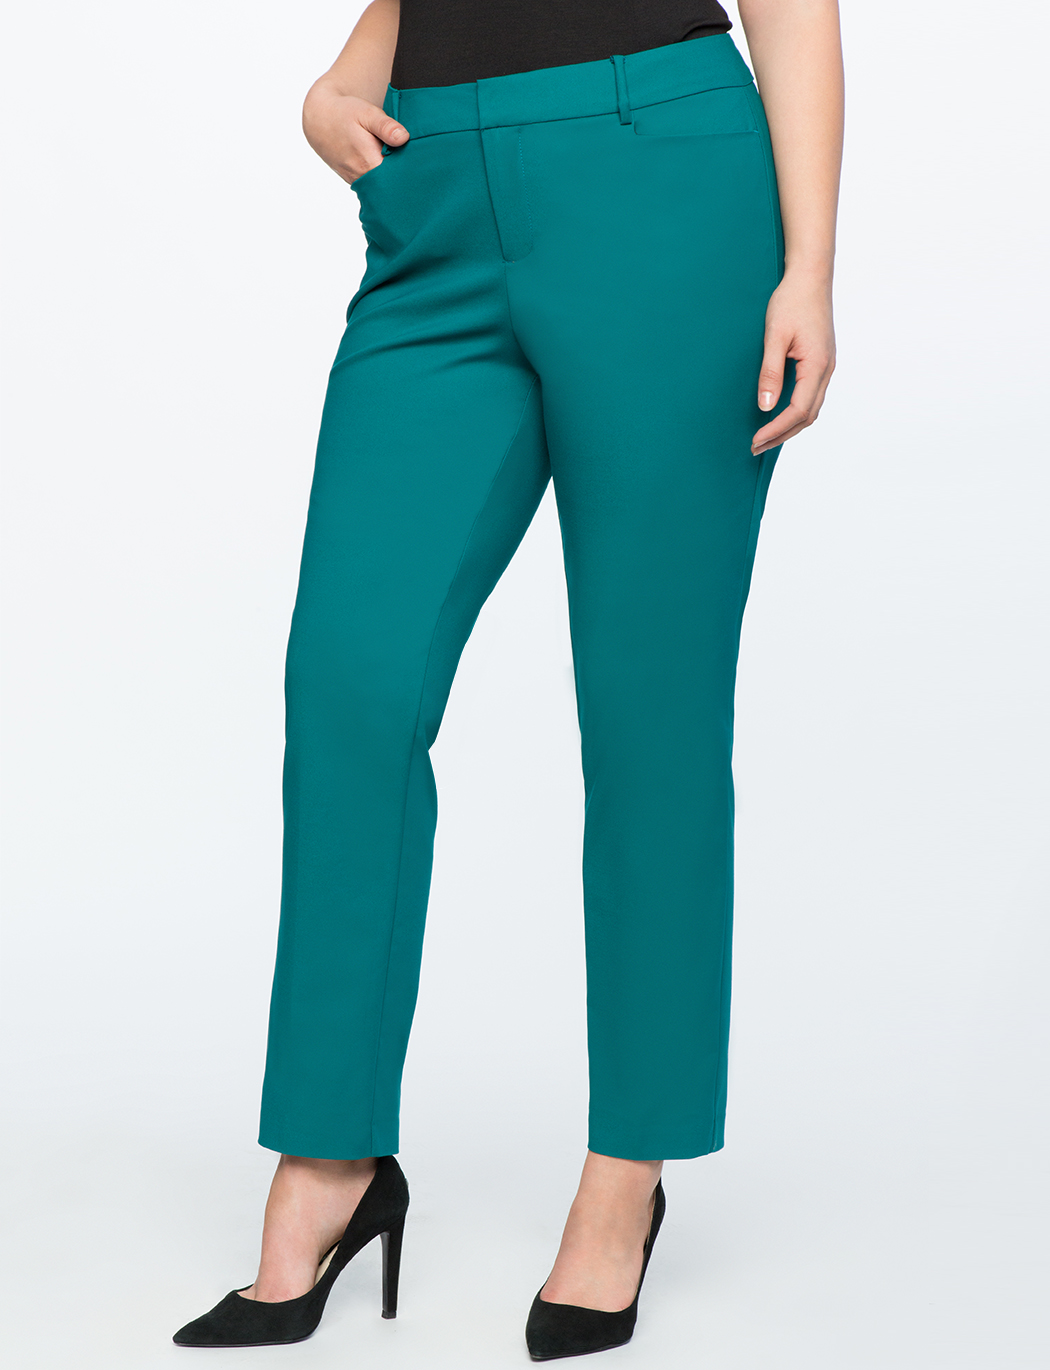 Kady Fit Double-Weave Pant 4